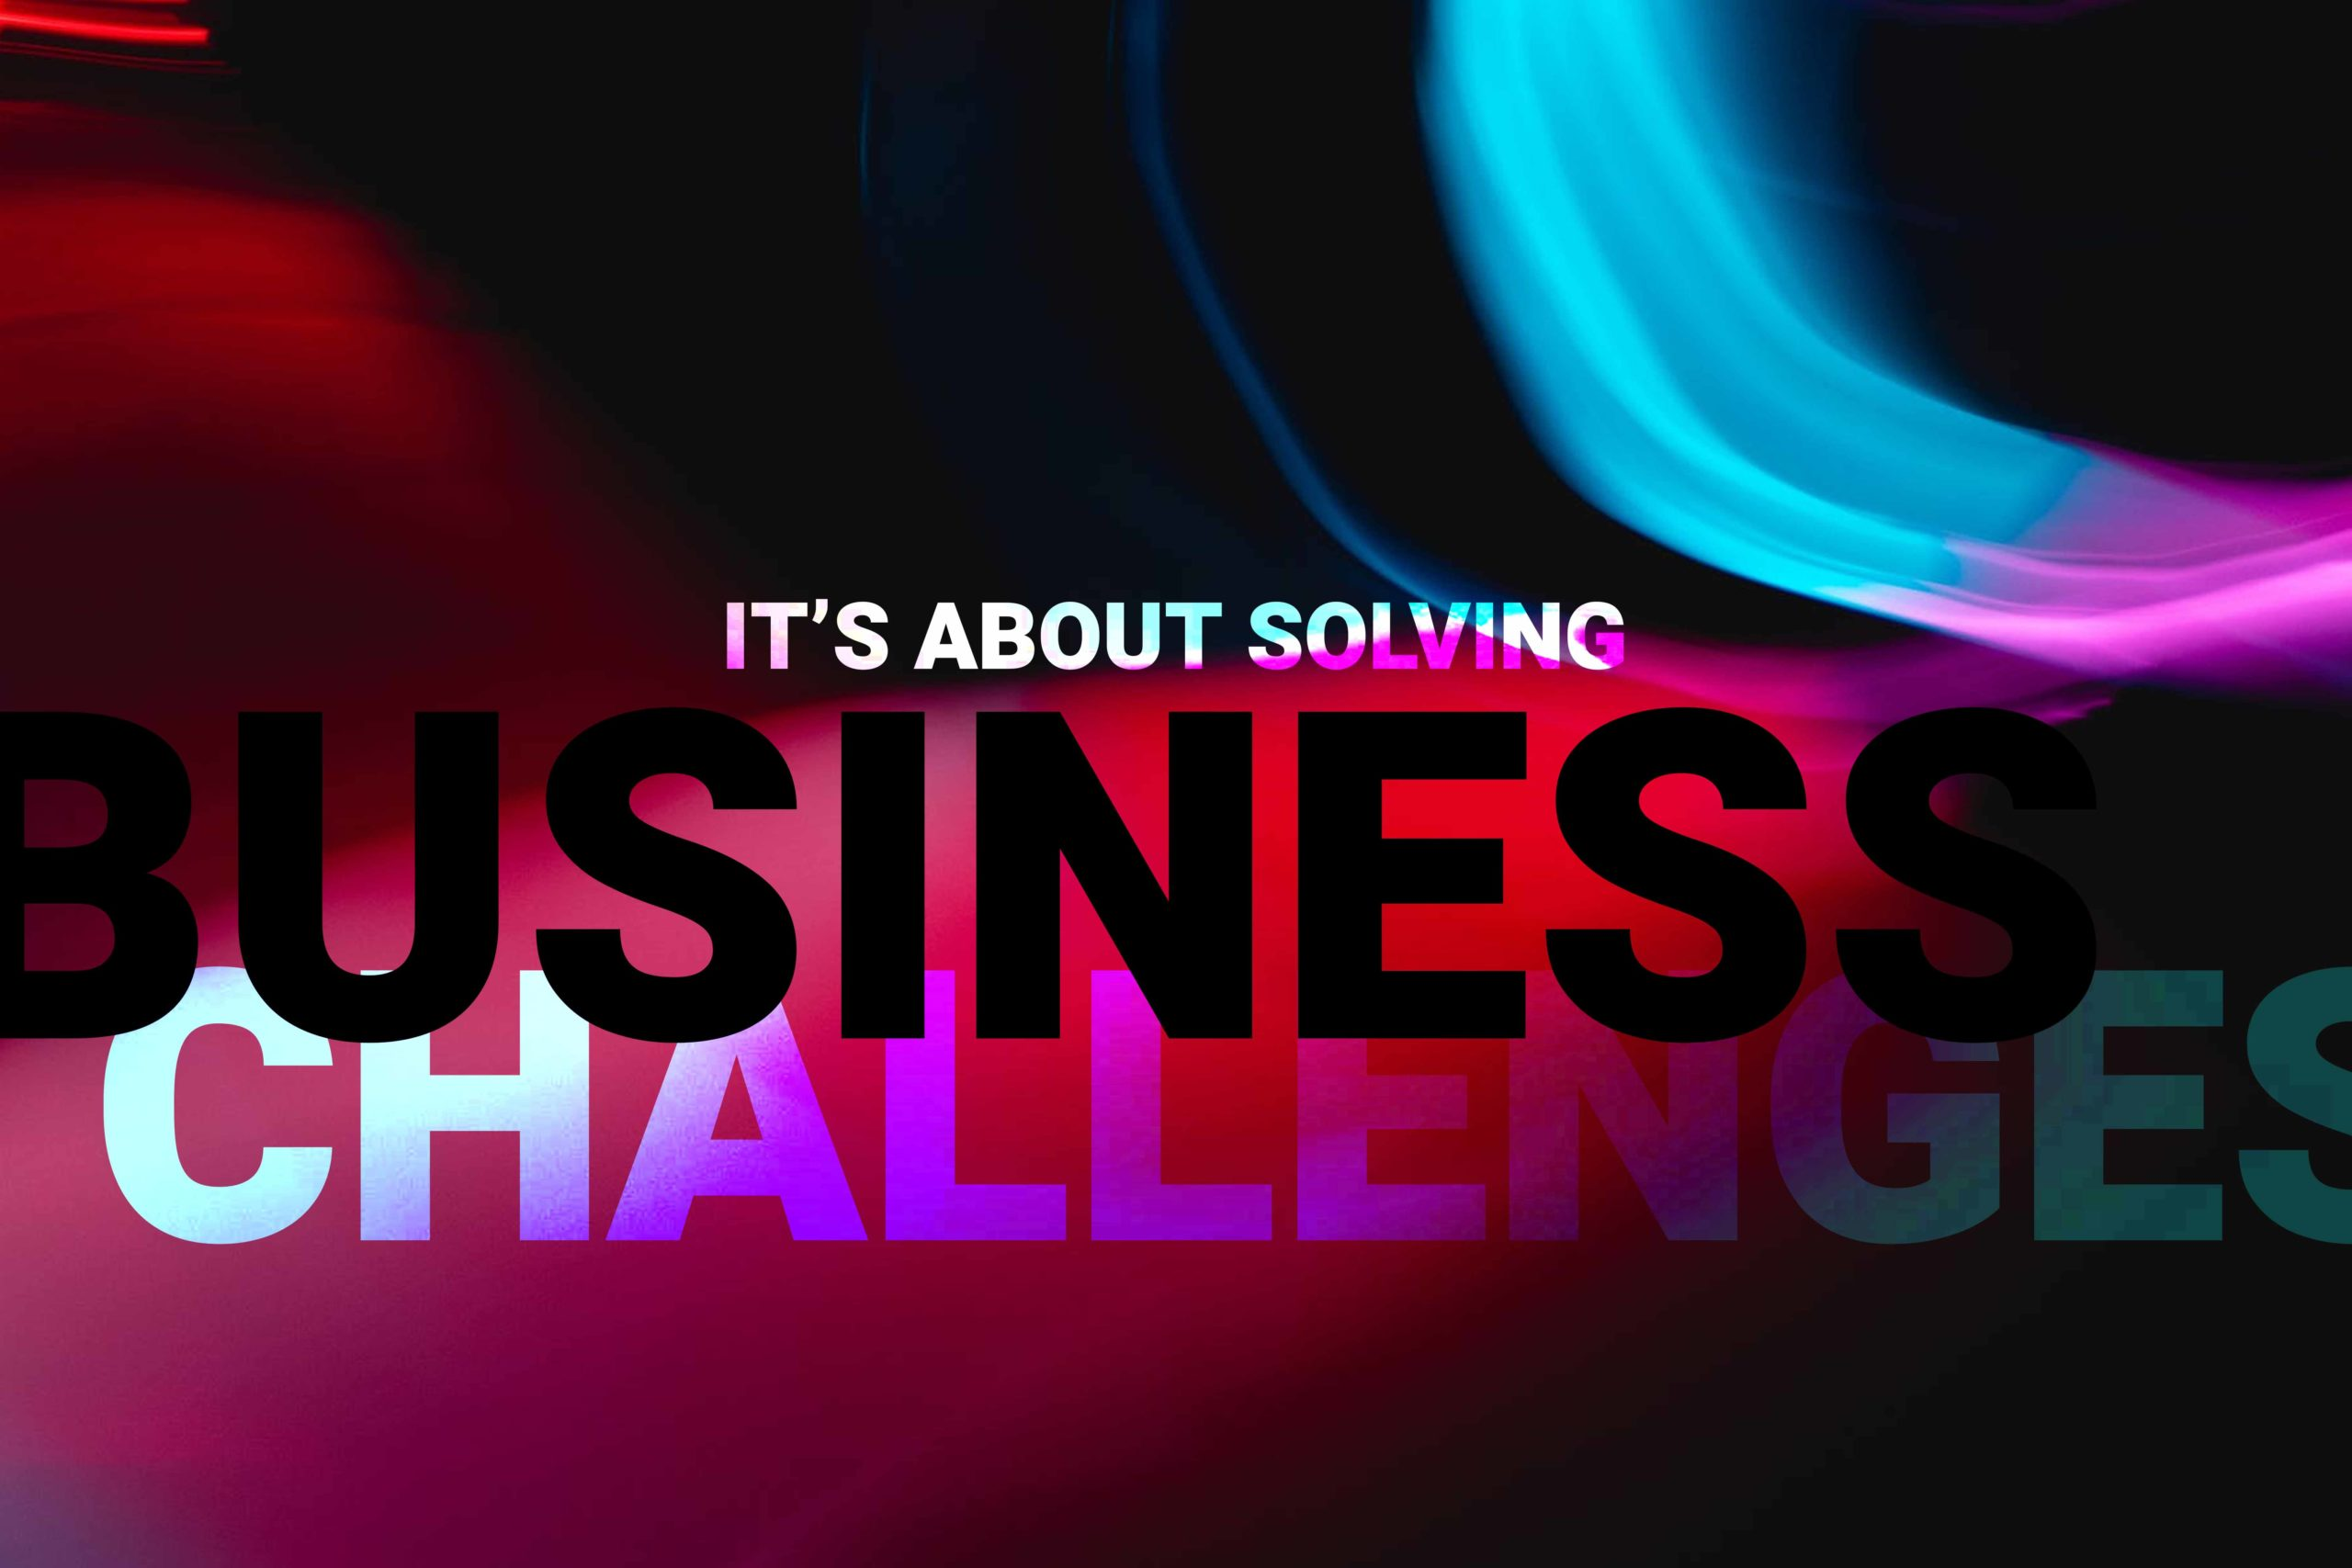 It's about solving business challenges